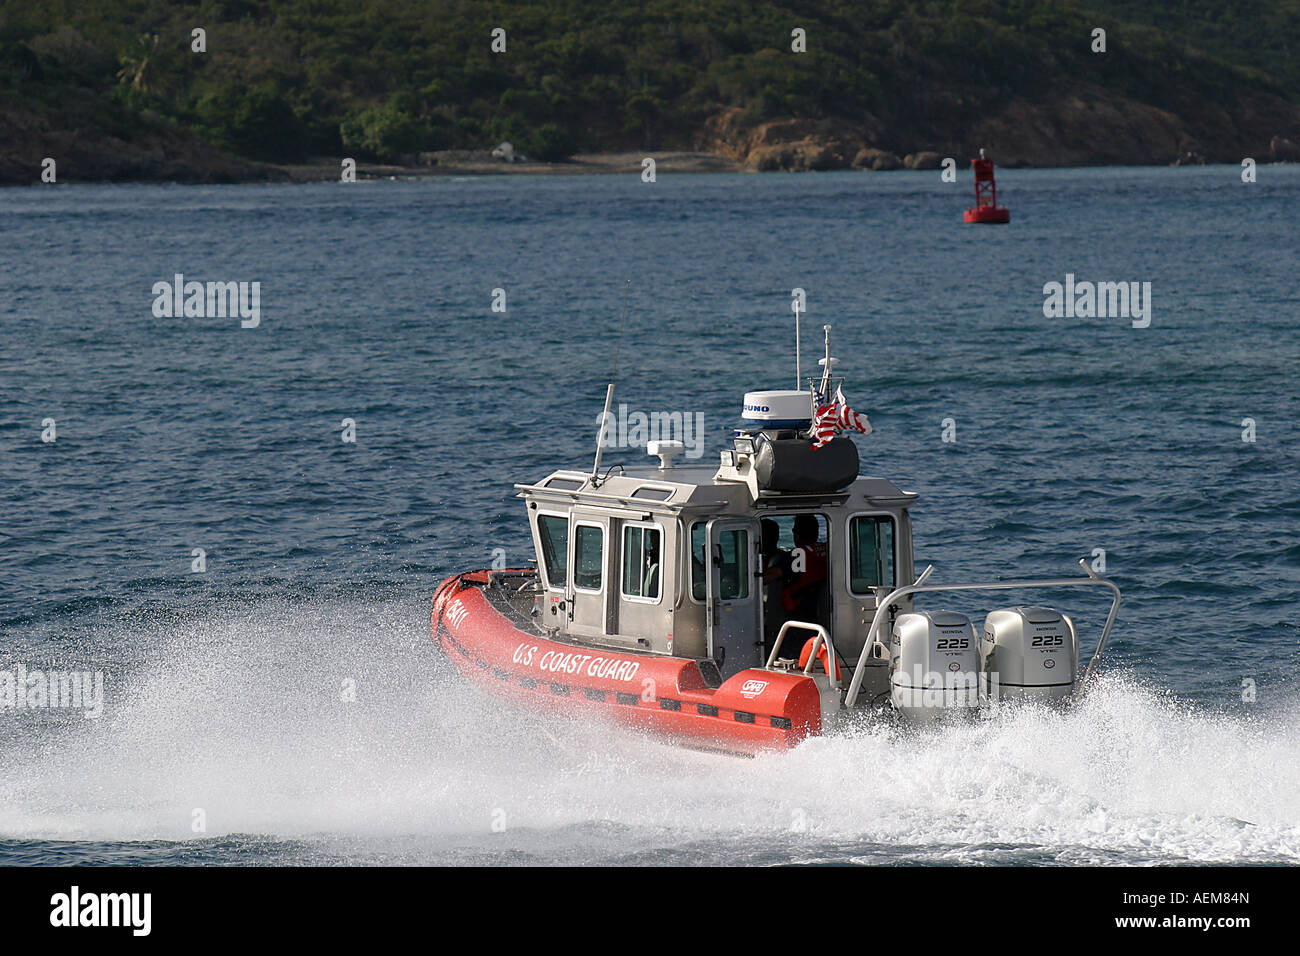 A 25 Coast Guard SAFE Boat patrols the waters of the US Virgin Islands in this picture taken near St Thomas US Virgin - Stock Image